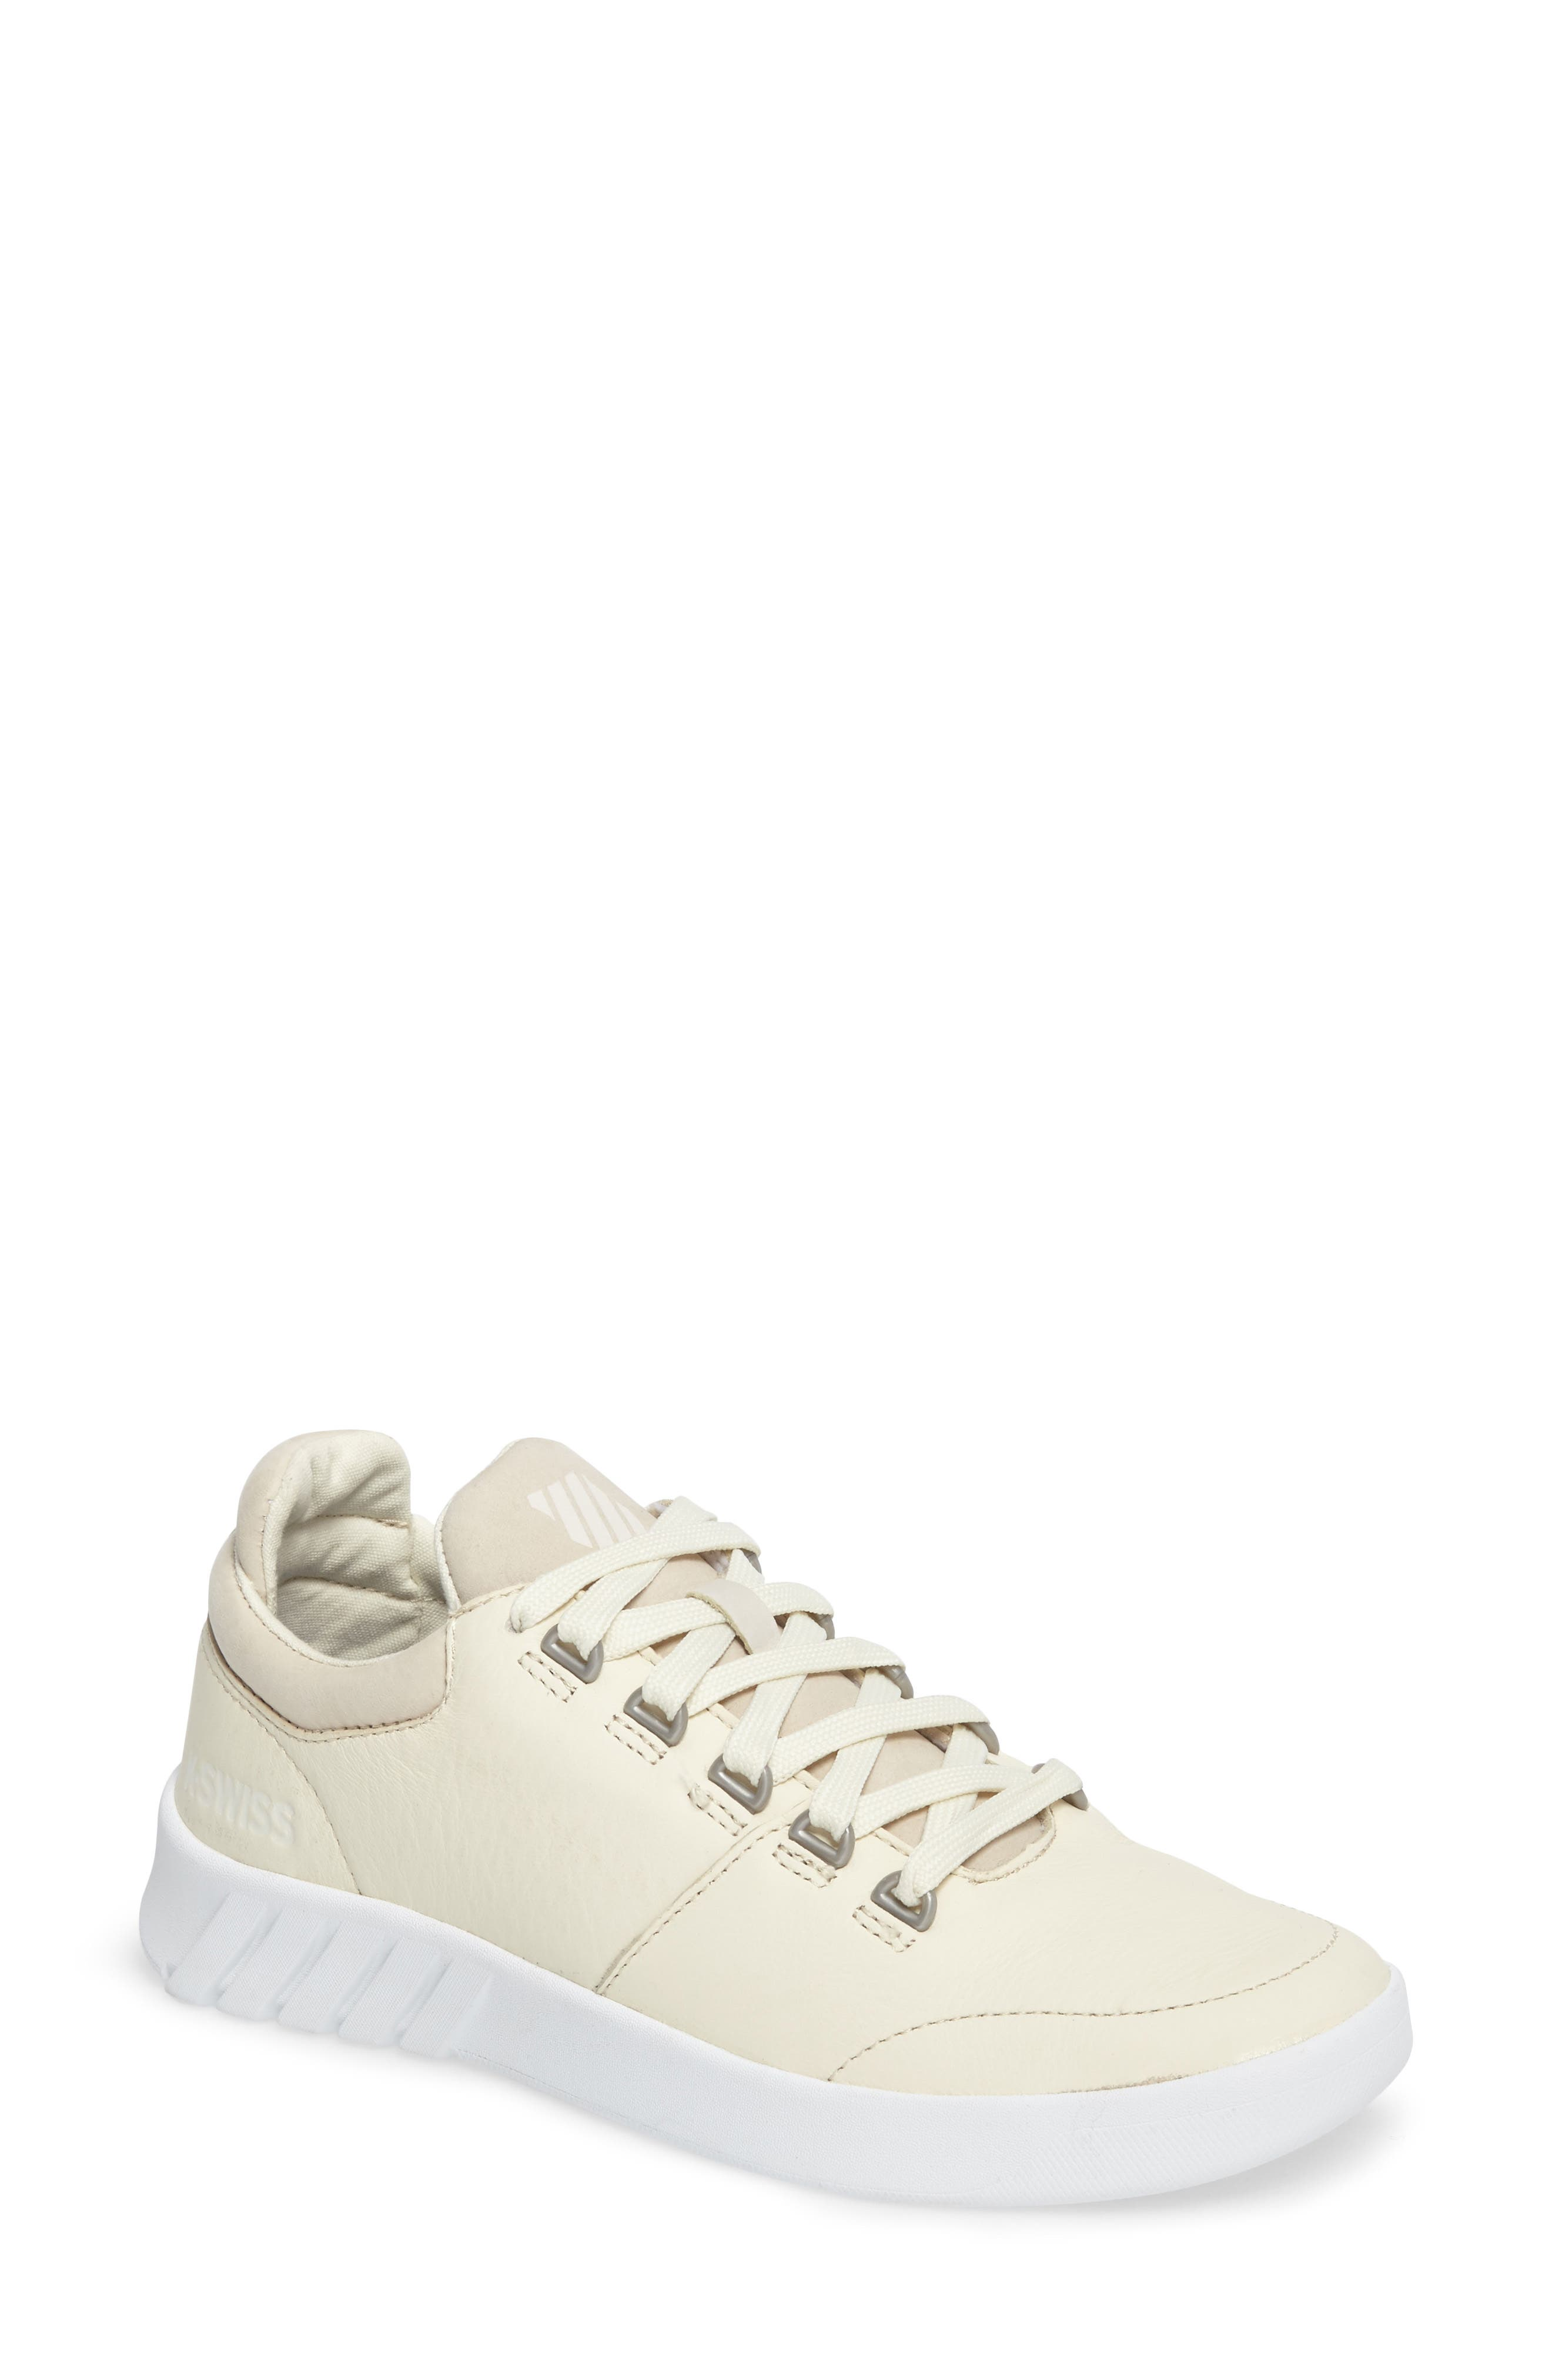 Aero Trainer Sneaker,                         Main,                         color, VANILLA ICE/ WHITE